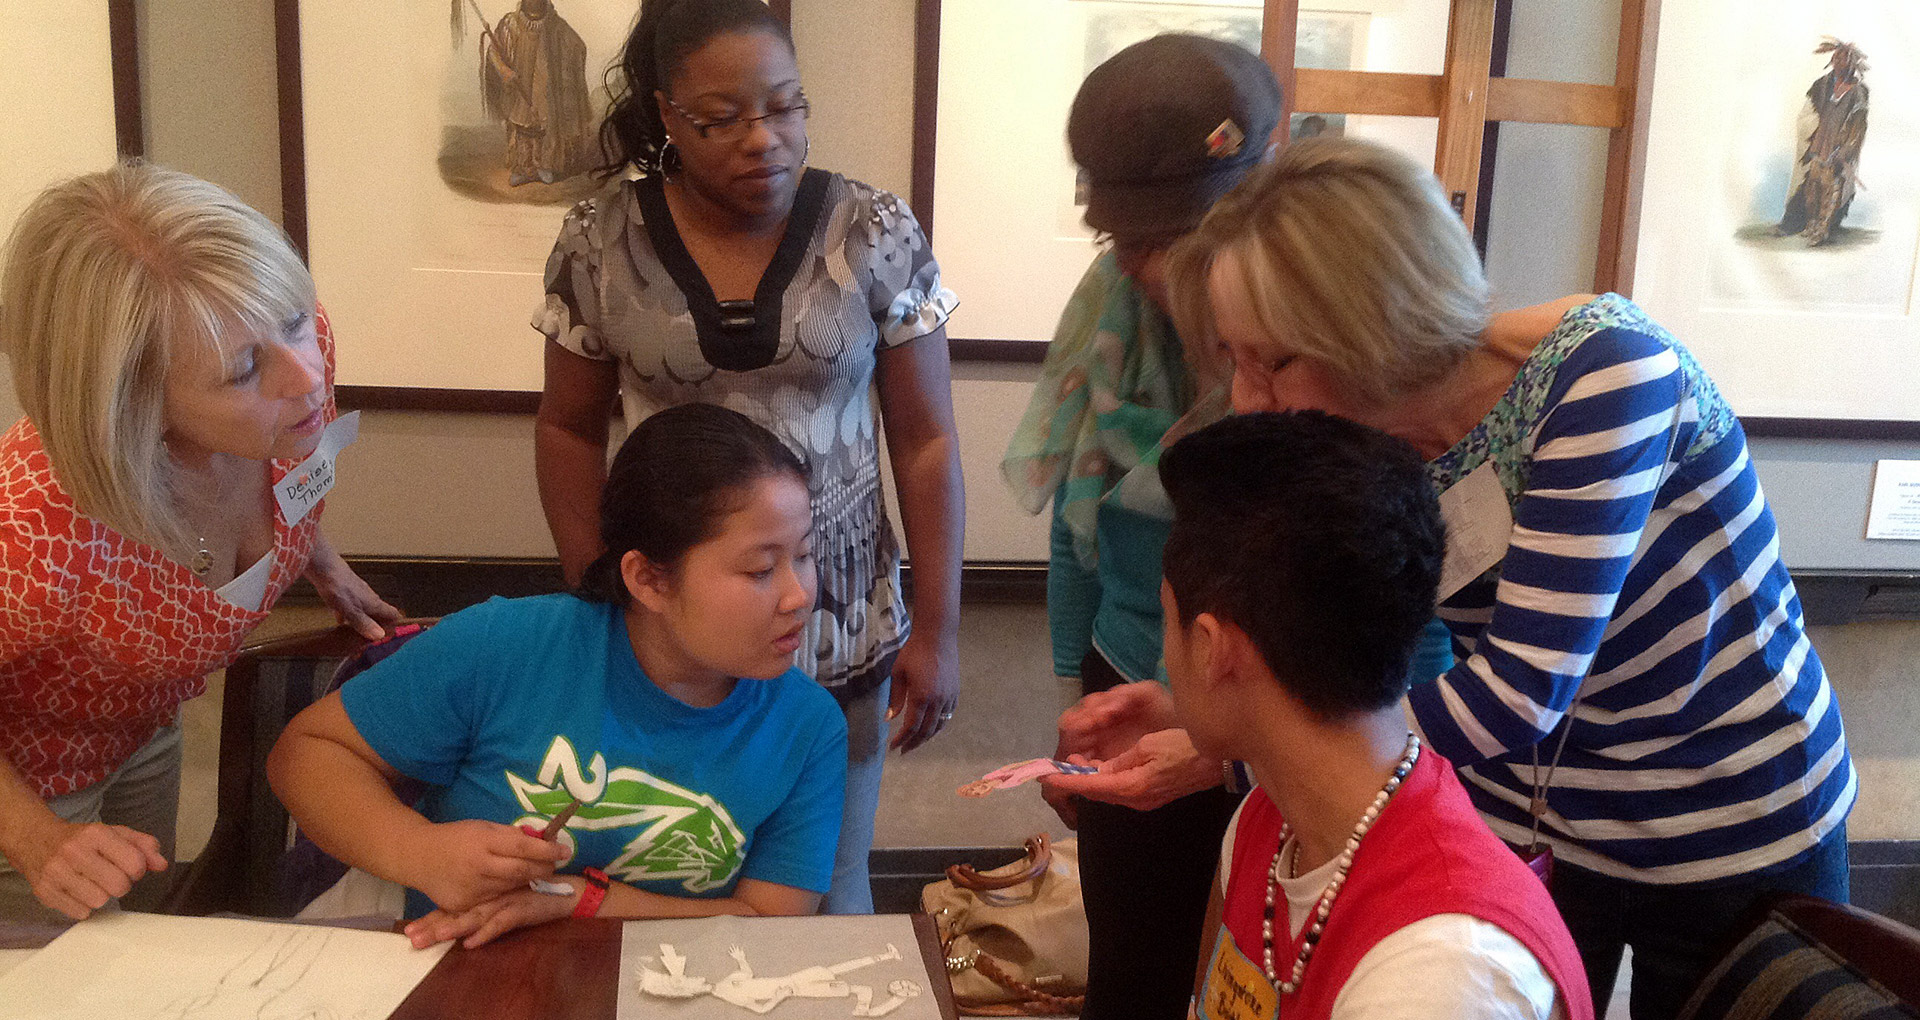 Traditional quilters help young quilters with their appliqué pieces. Courtesy Joslyn Art Museum